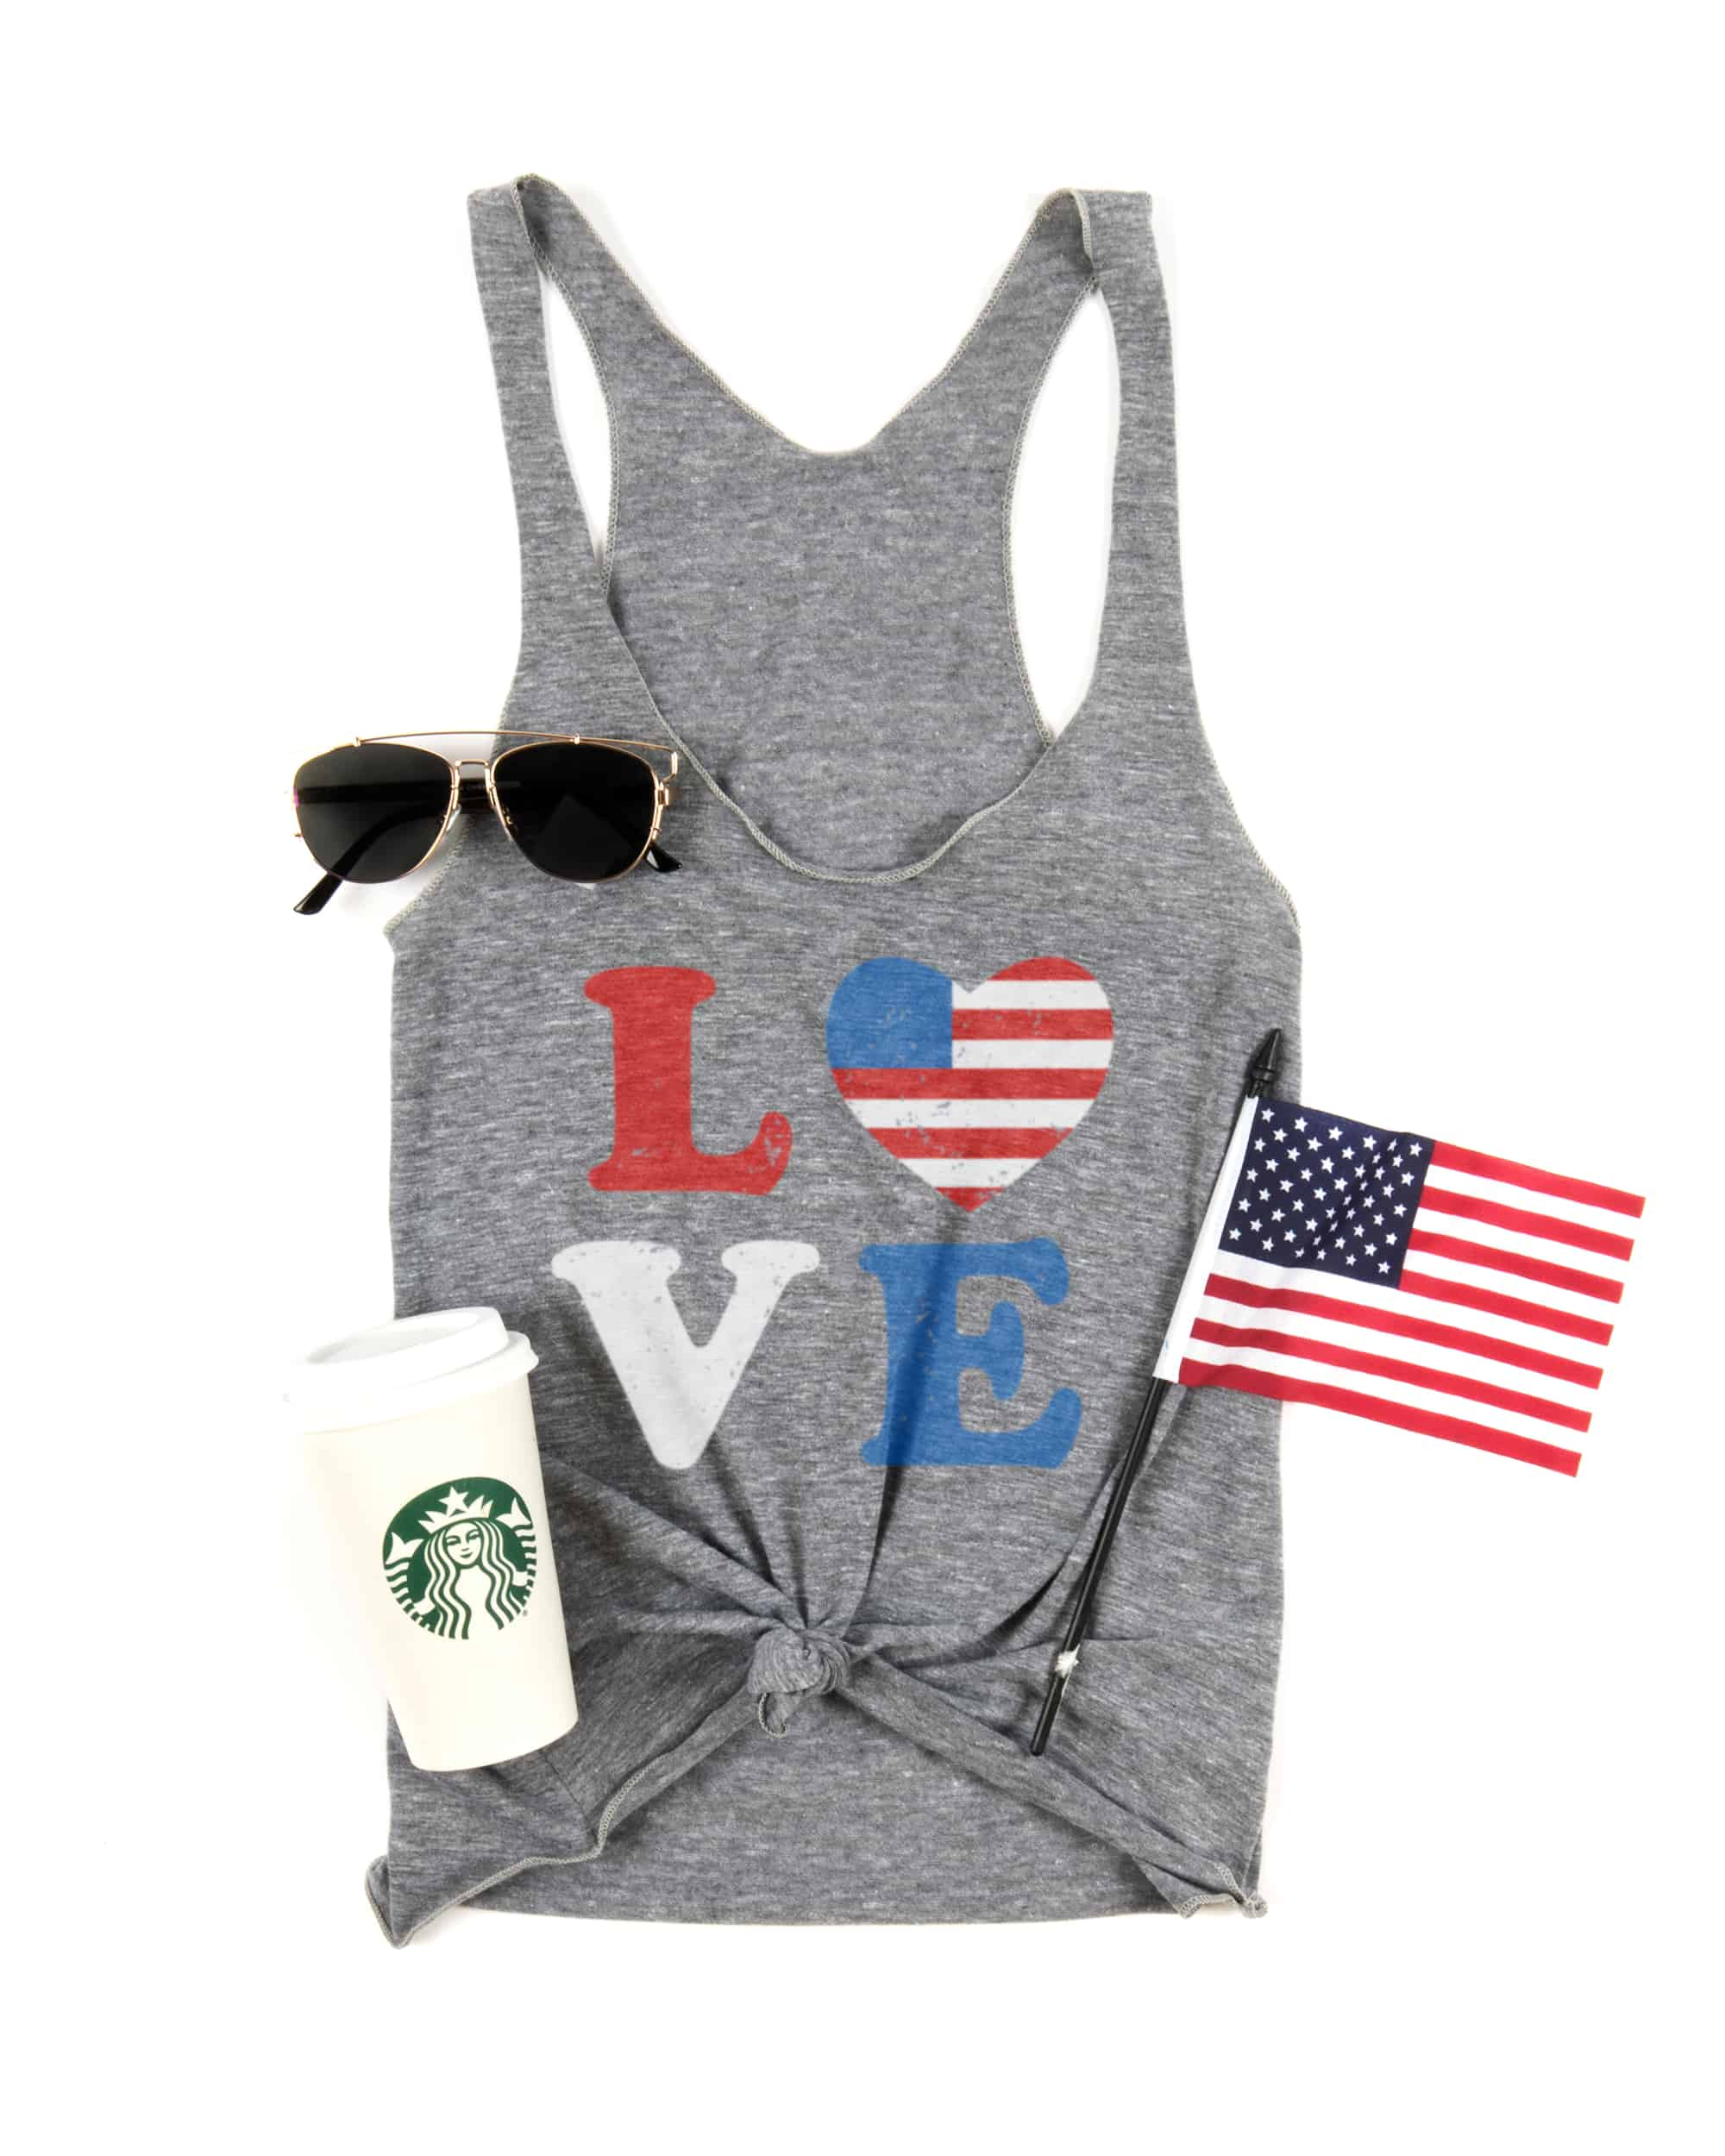 An example Fourth Of July themed t-shirt design on a ladies tank top.